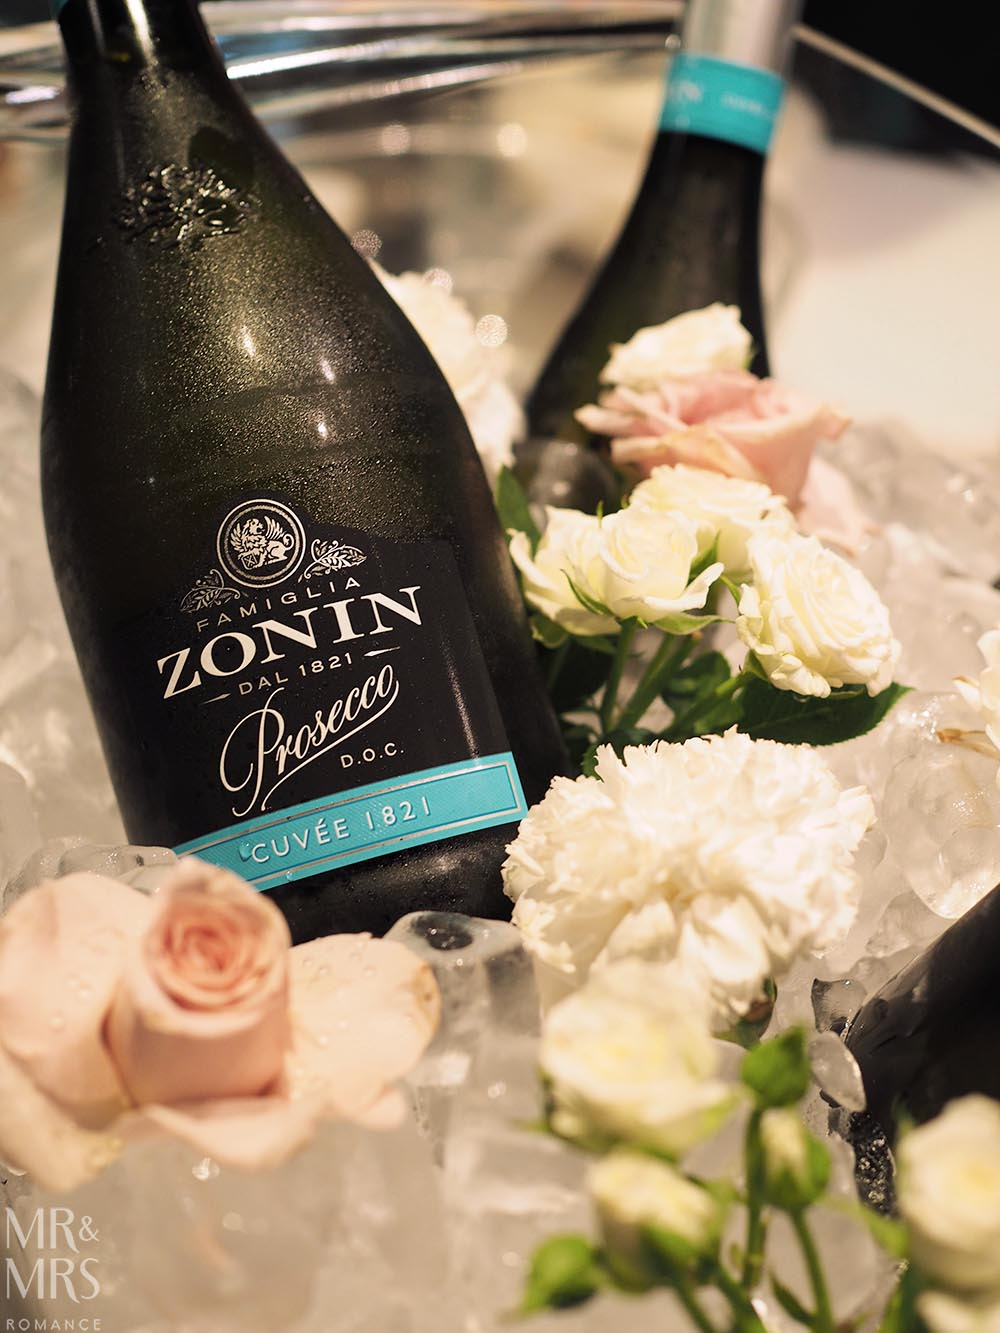 Aperitivo with Zonin Prosecco